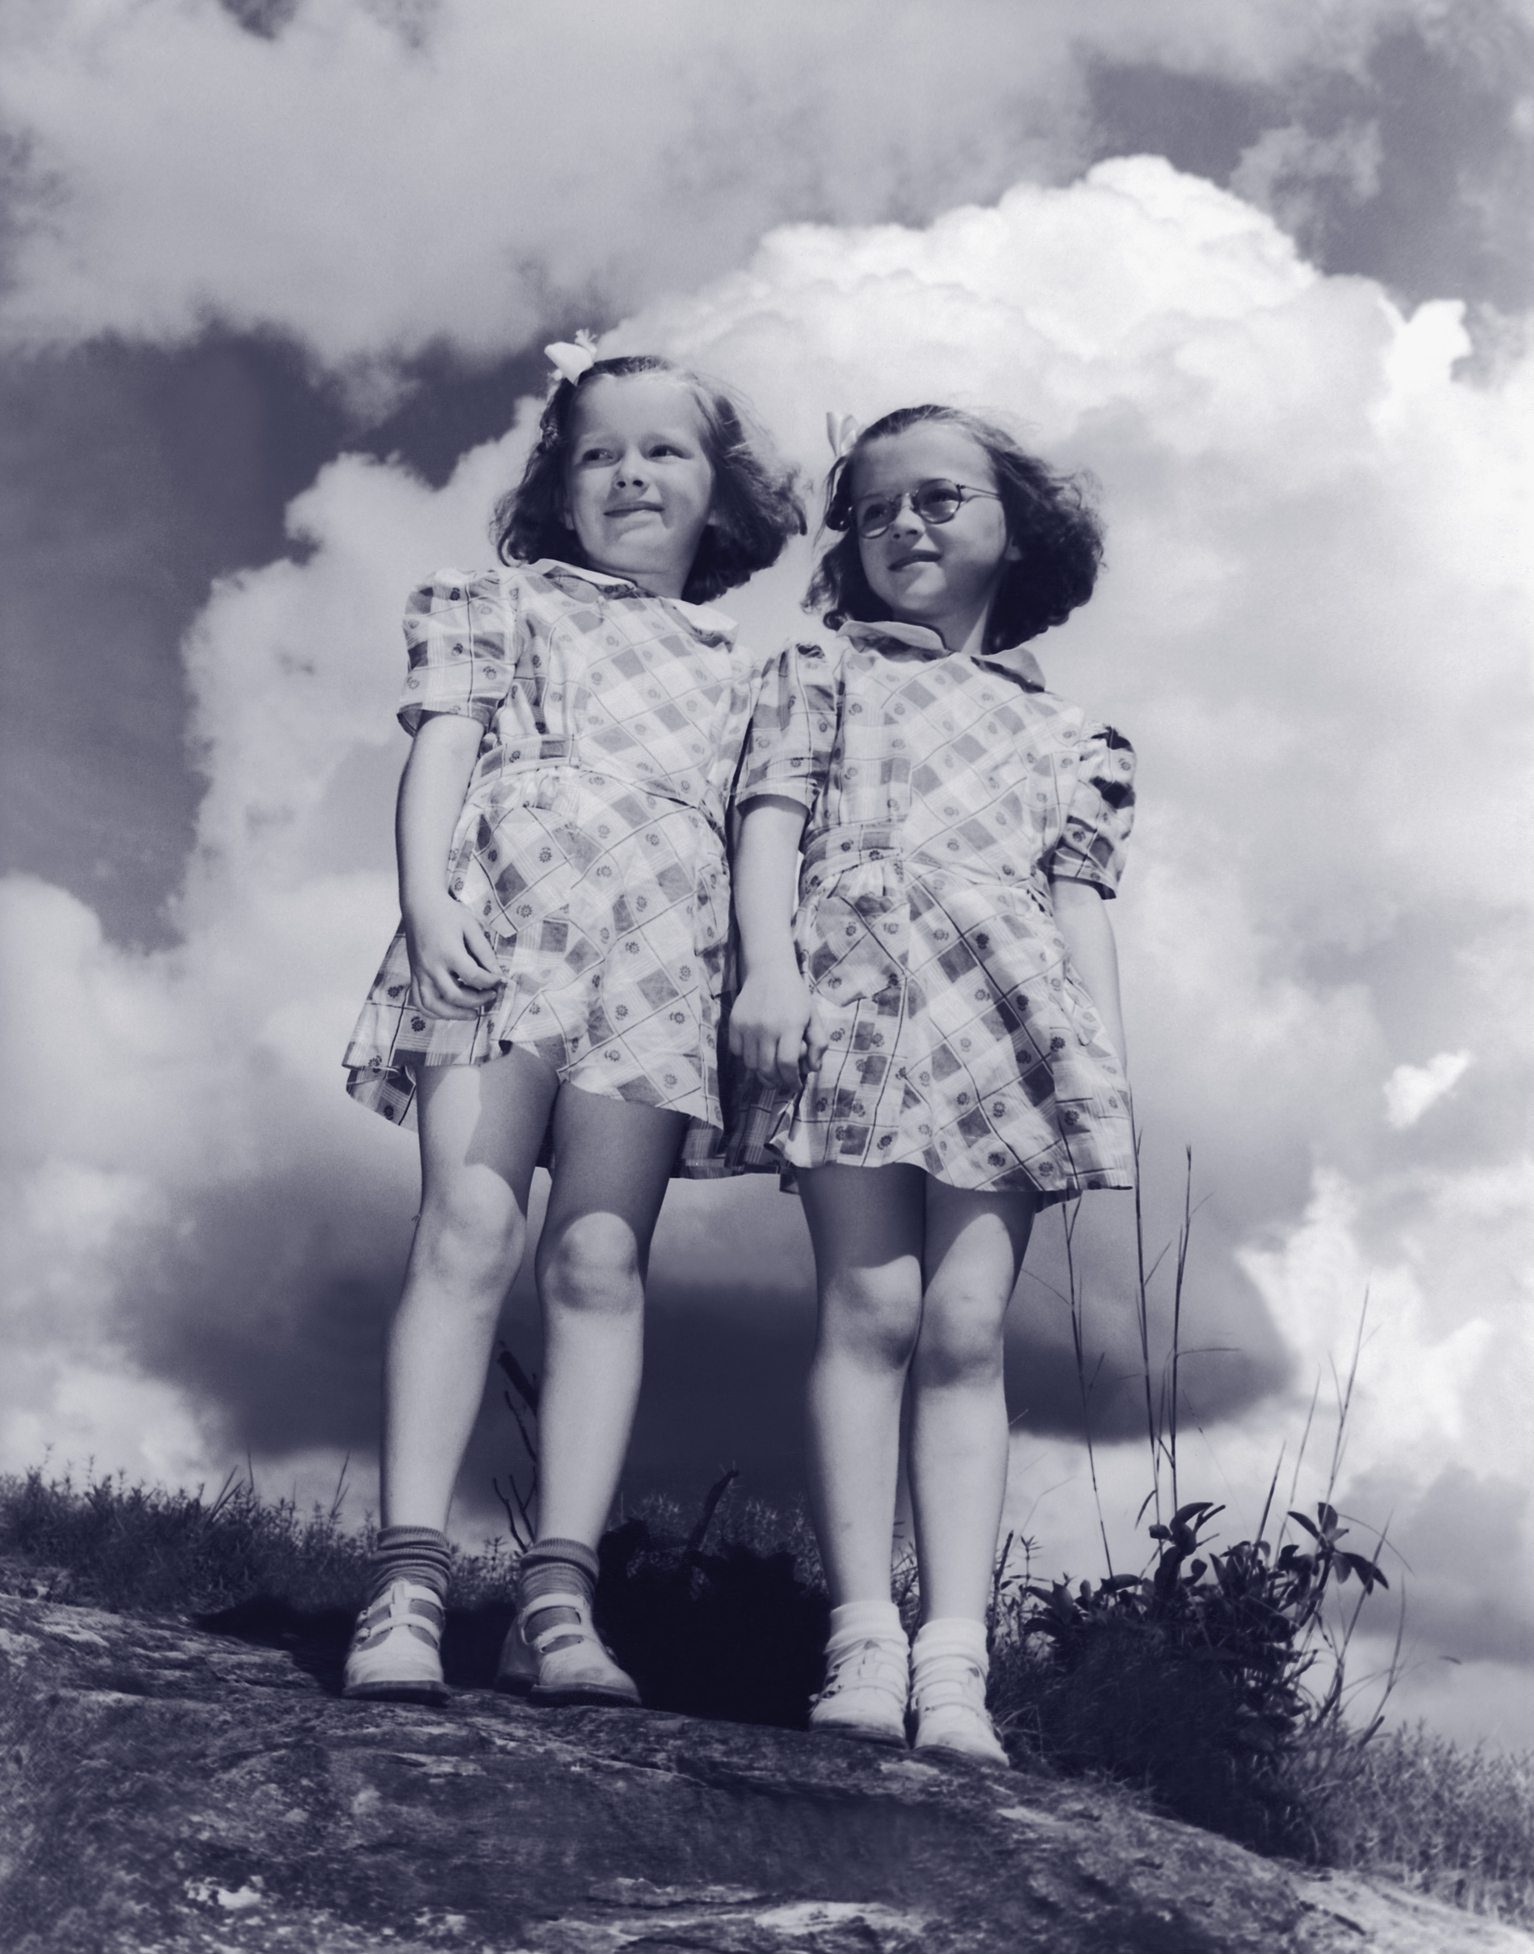 Old Photo of twin girls